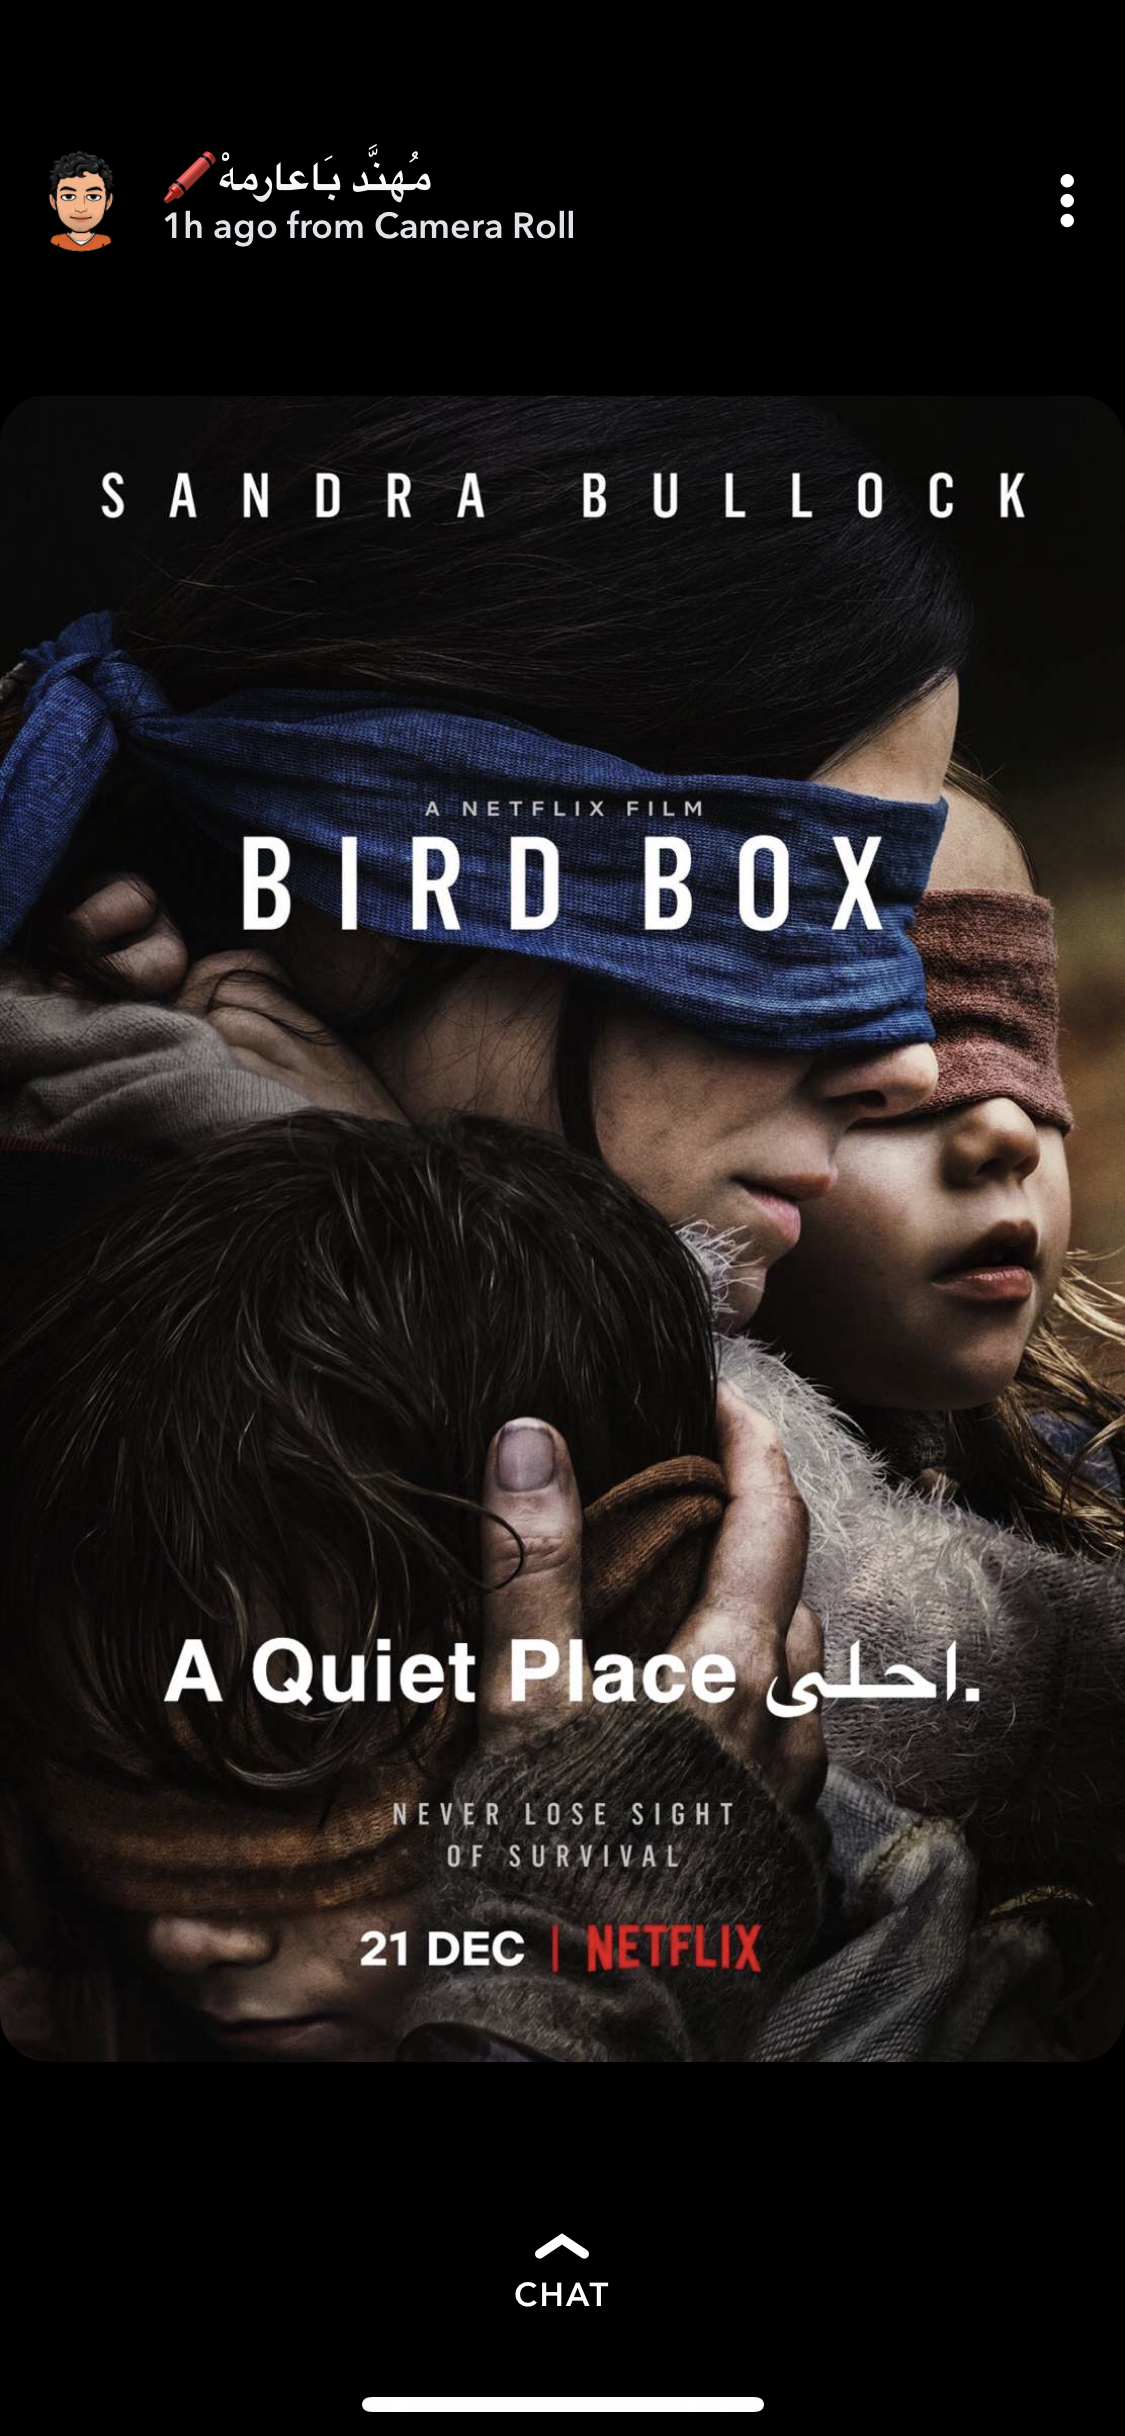 Pin by iefaax on افلام ومسلسلات Film, Netflix, Bird boxes